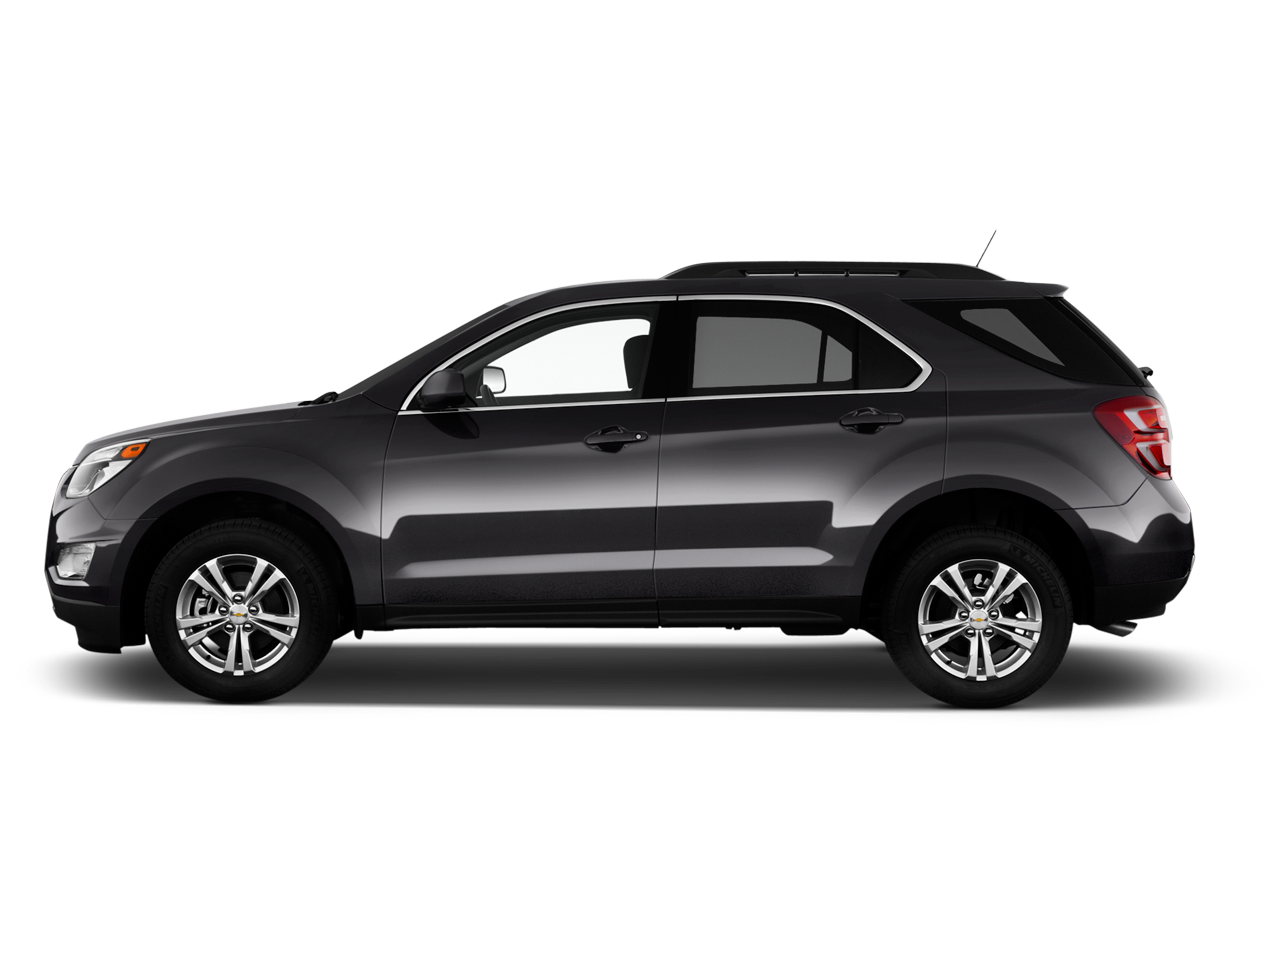 used certified one-owner 2016 chevrolet equinox lt - sylvania oh